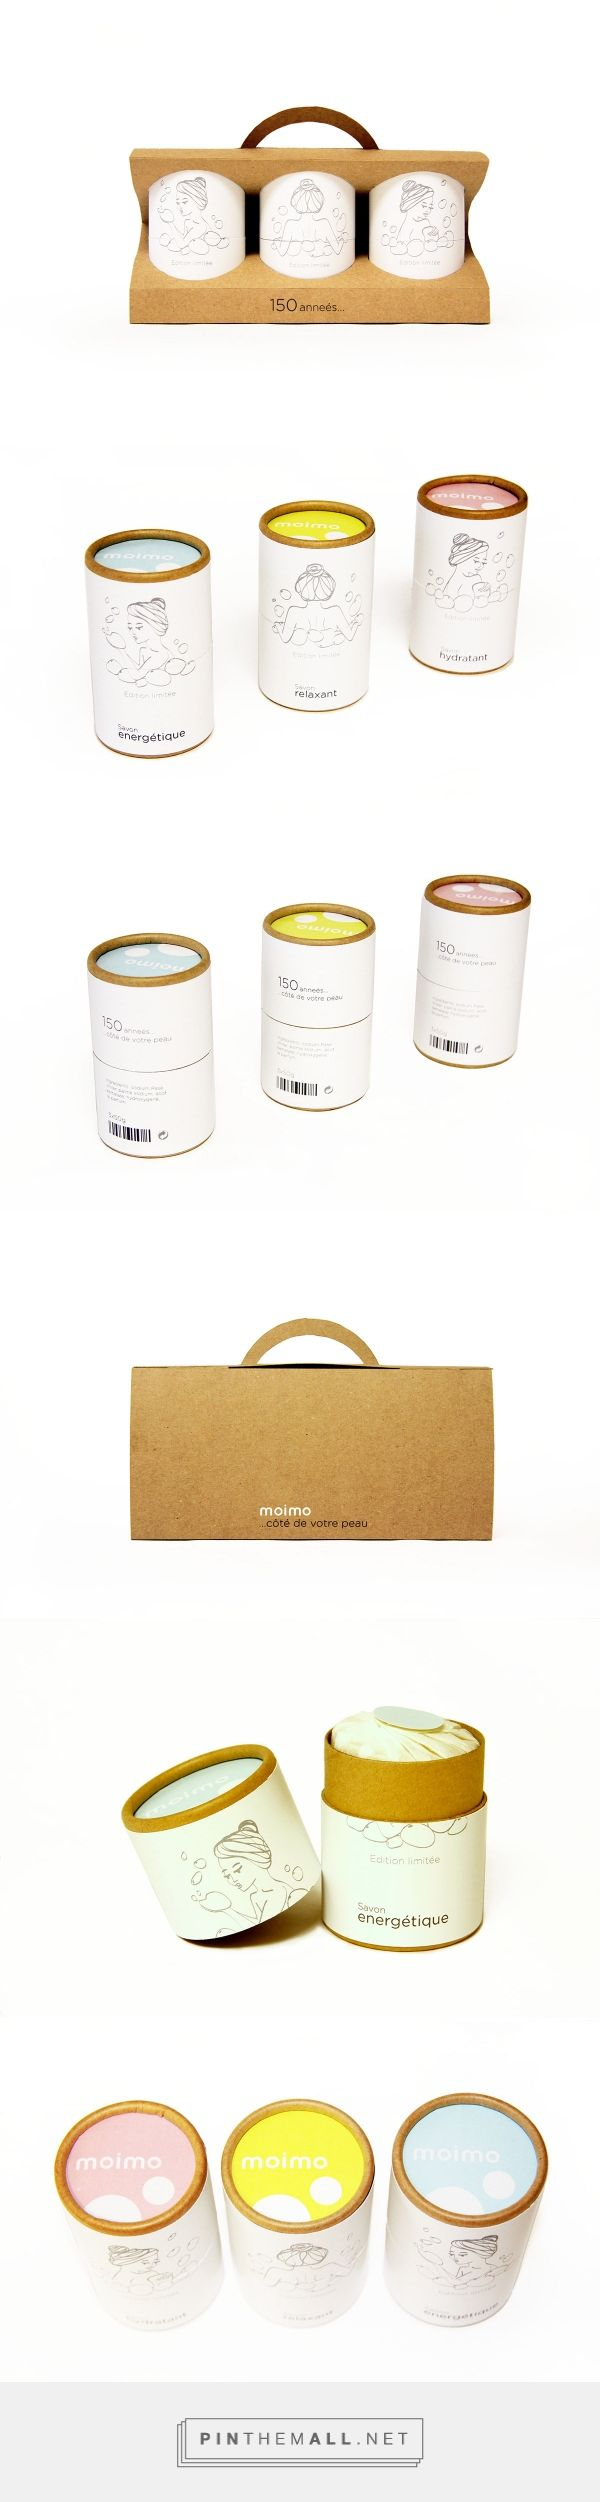 Moimo / Soap packaging